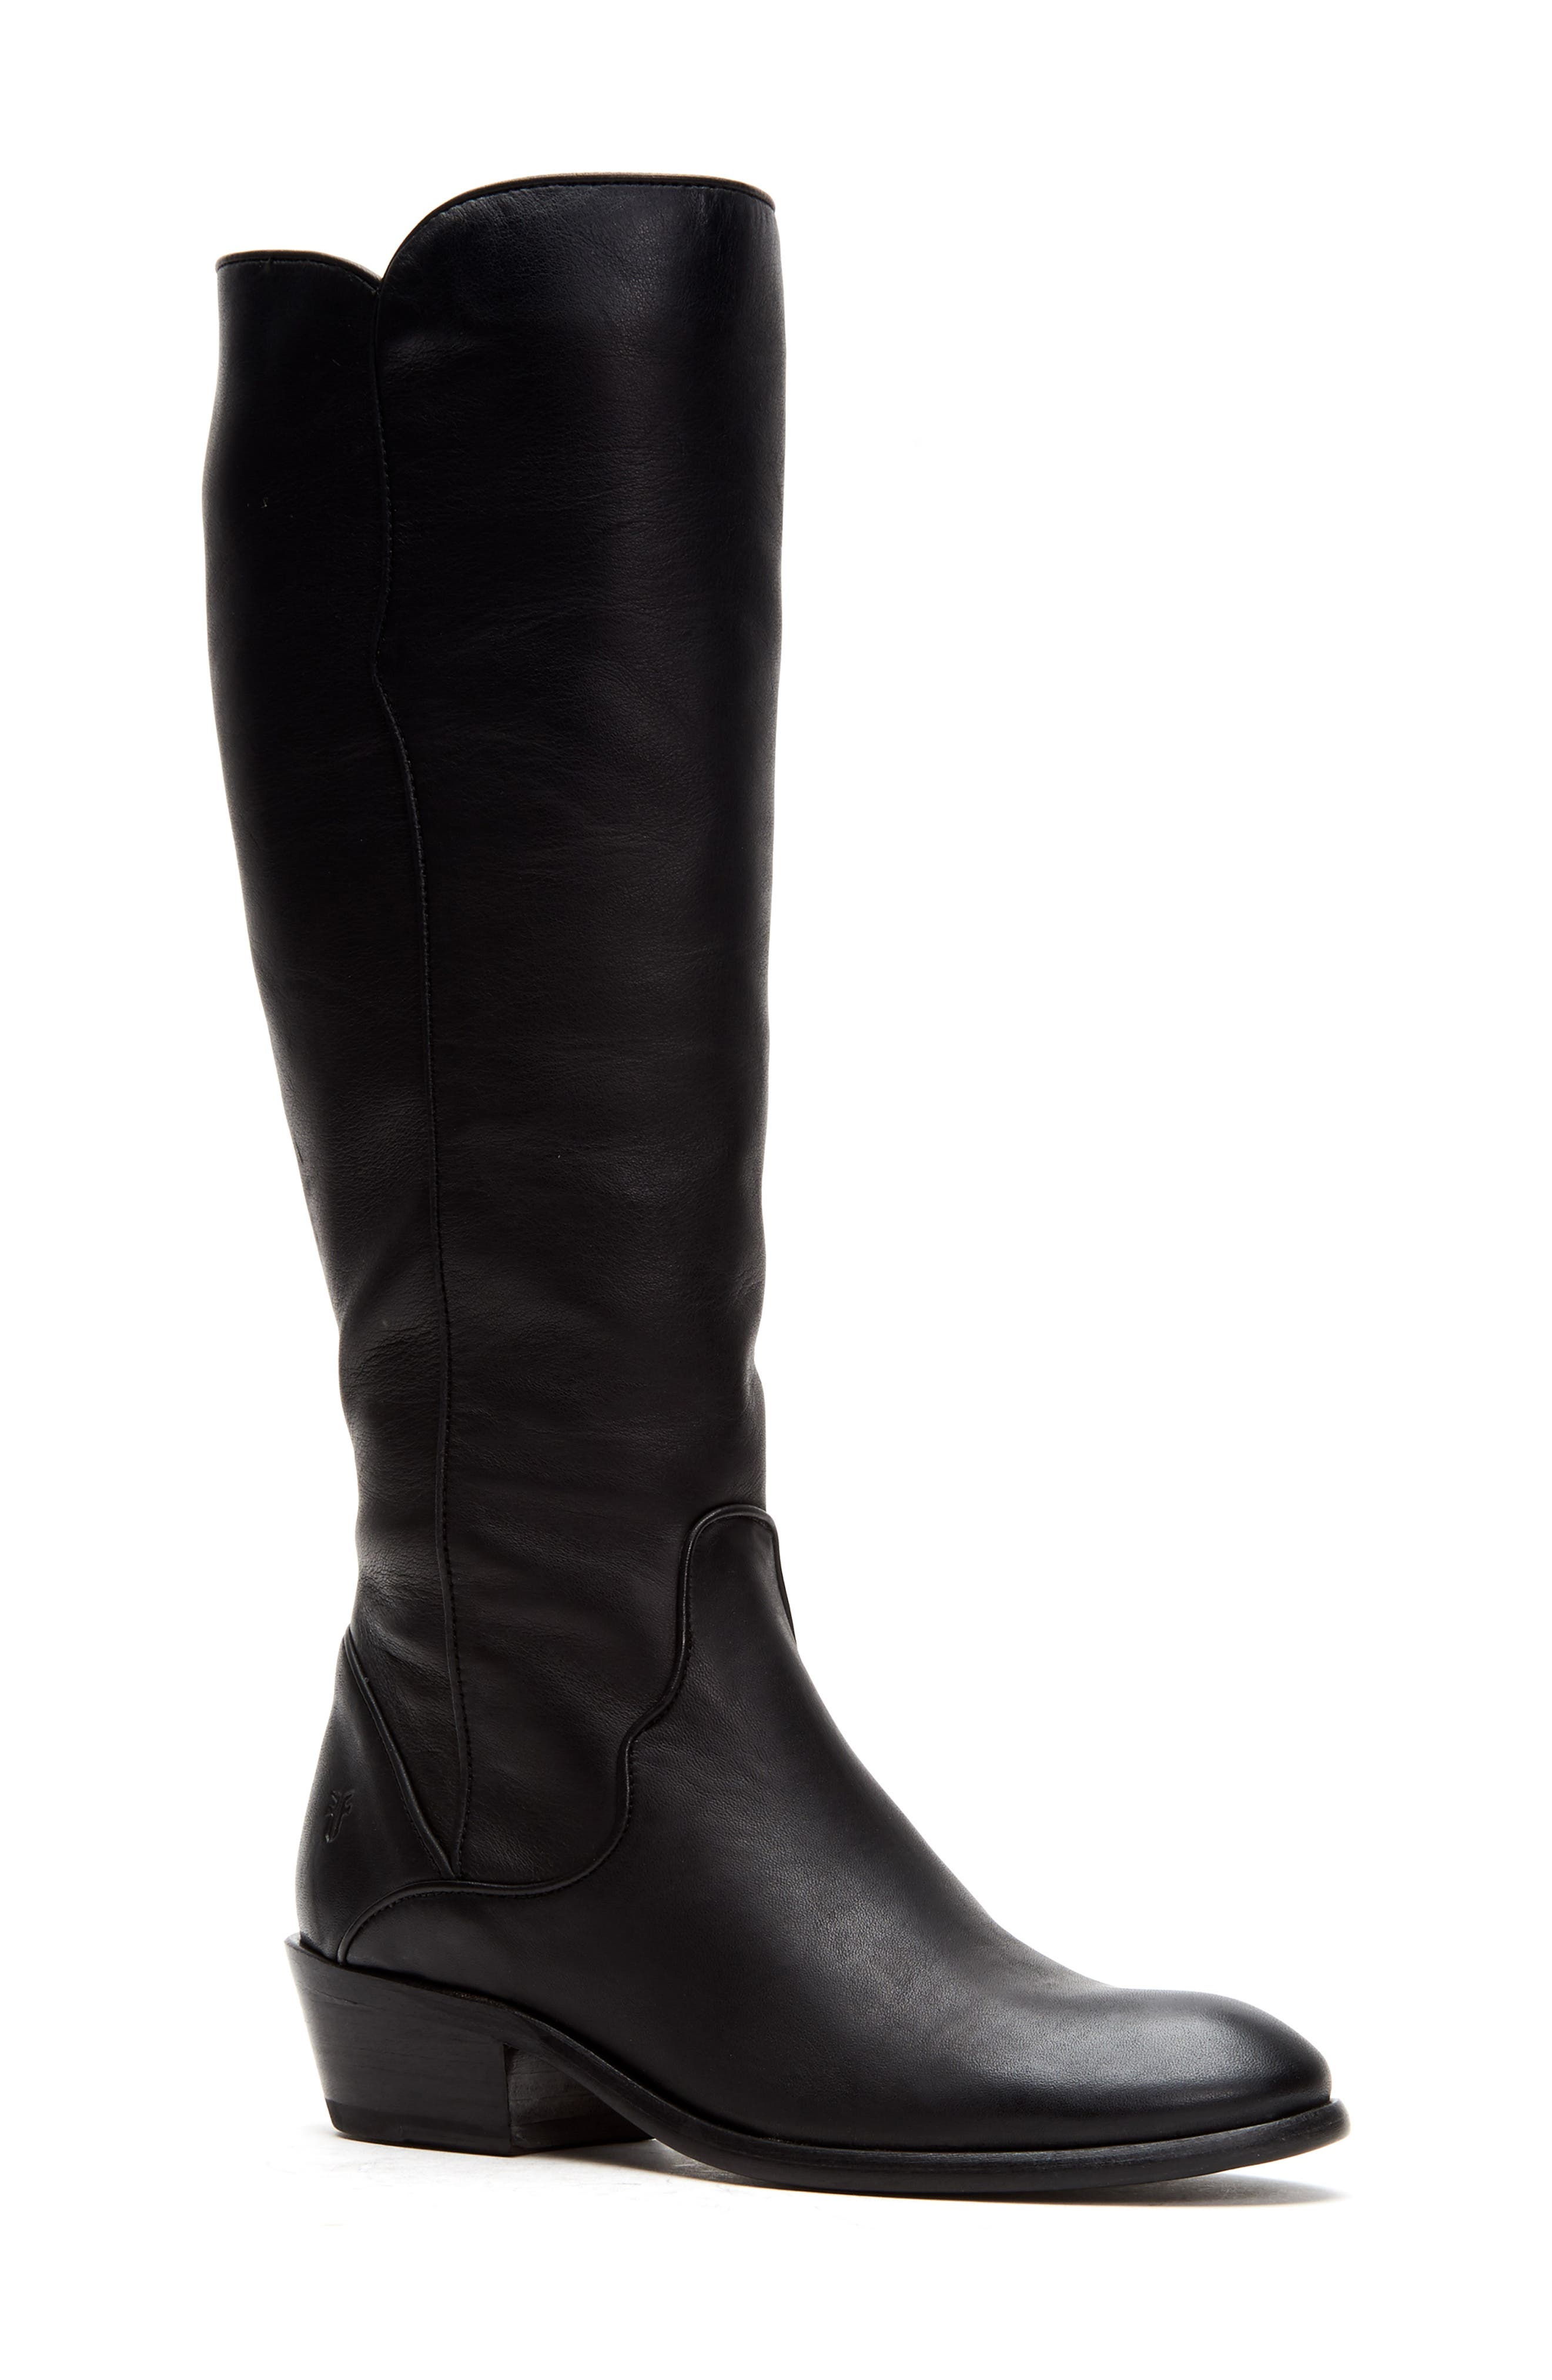 This knee-high boot made from soft full-grain leather exemplifies Western style with a modern twist. Style Name: Frye Carson Knee High Boot (Women). Style Number: 5947086. Available in stores.